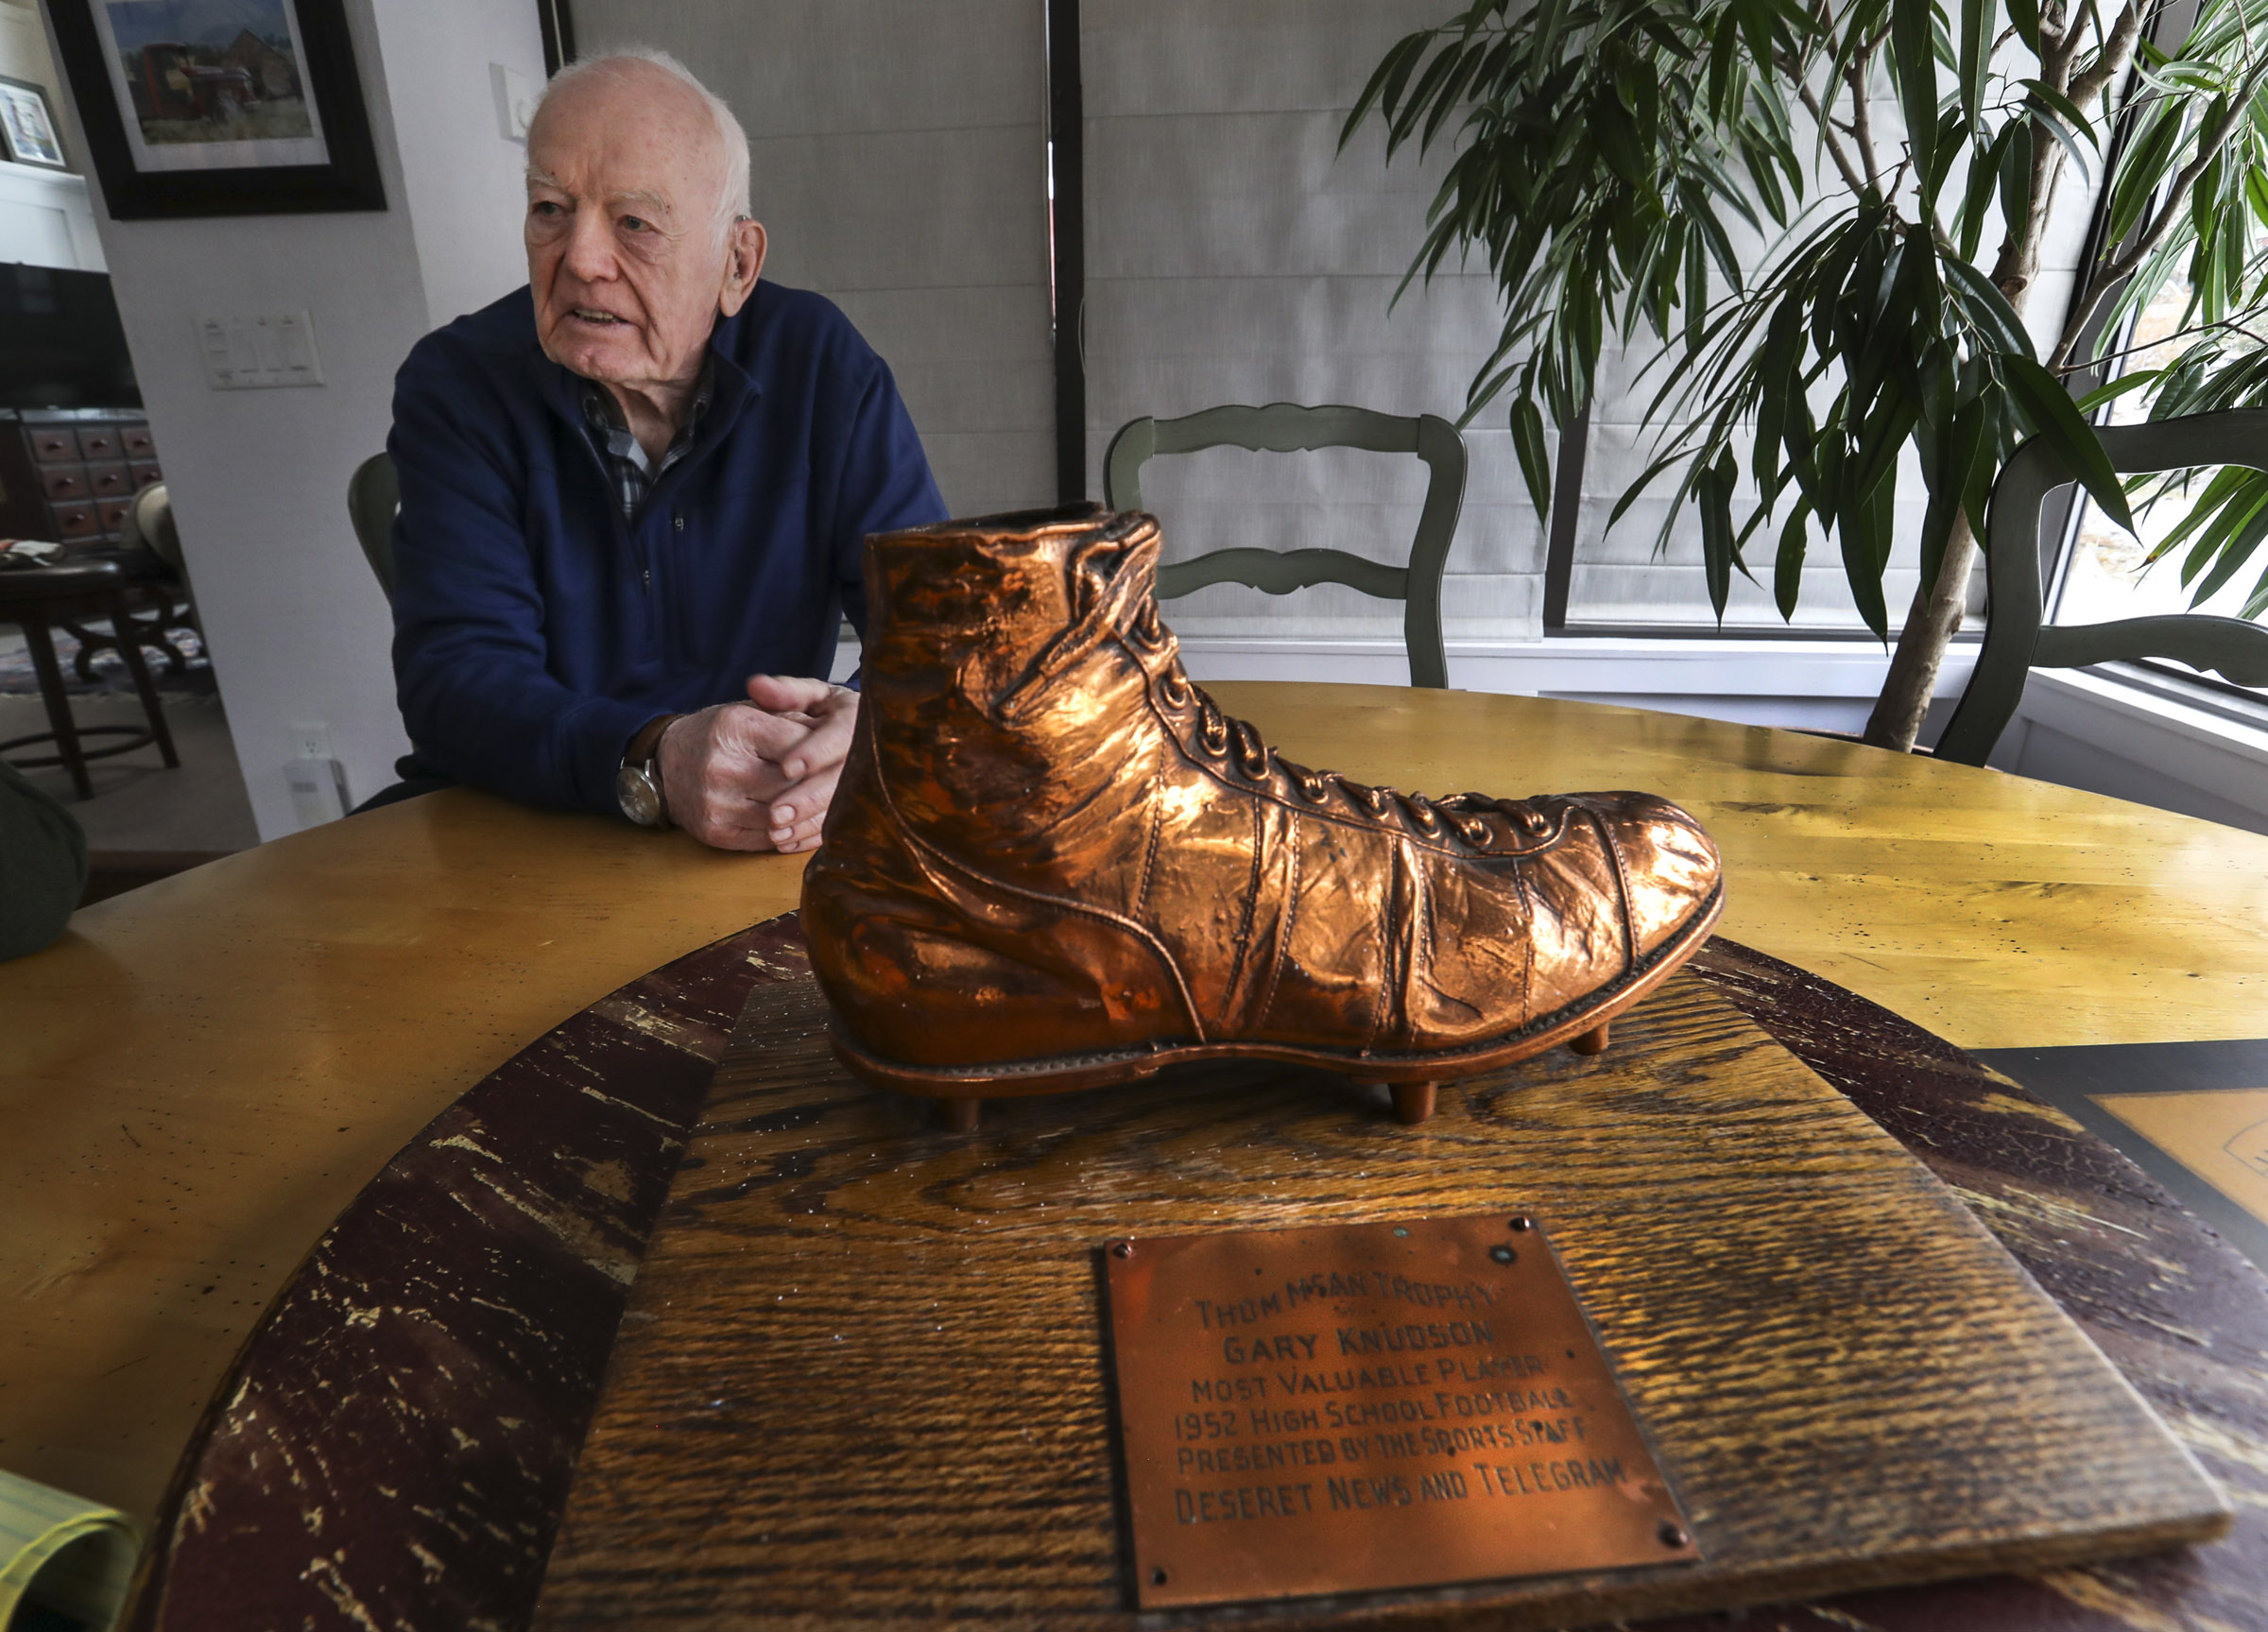 Gary Knudsen, who coached the Park City High School football team from 1962 to 1965, talks about his coaching memories from his home in Park City on Wednesday, Nov. 20, 2019. Knudsen's high school bronzed football shoe from 1952 is part of the player of the year trophy he won playing for West High School in Salt Lake City.